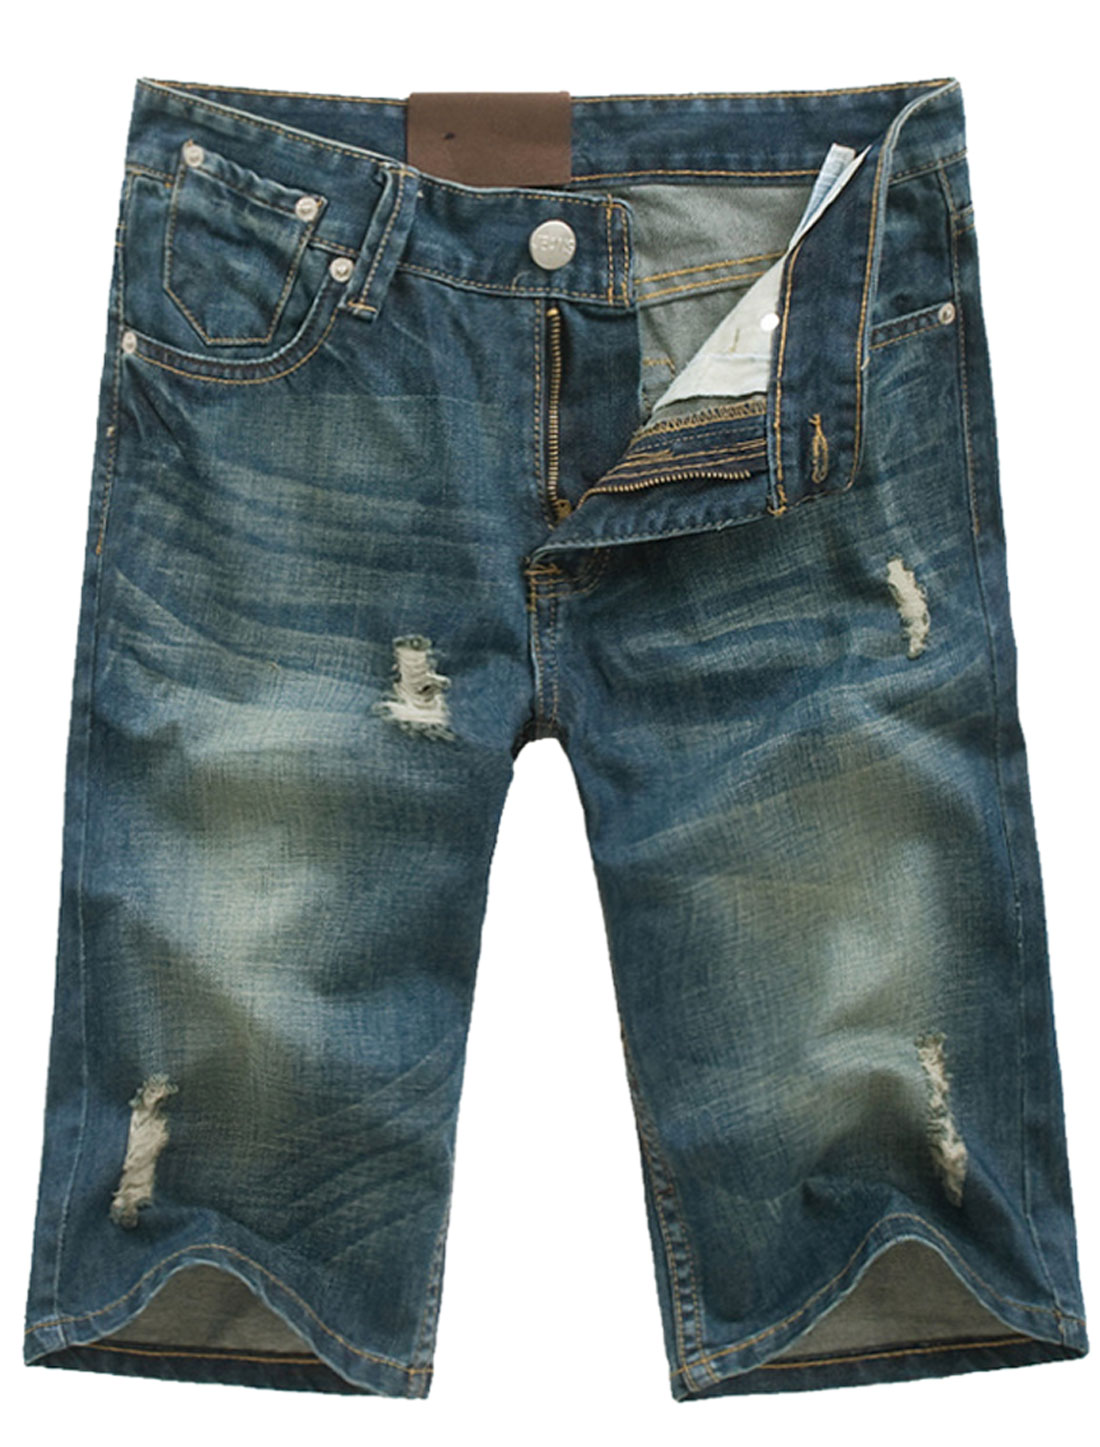 Man Distressed Detail Zip Fly Hip Pockets Belt Loop Denim Shorts Dark Blue W32